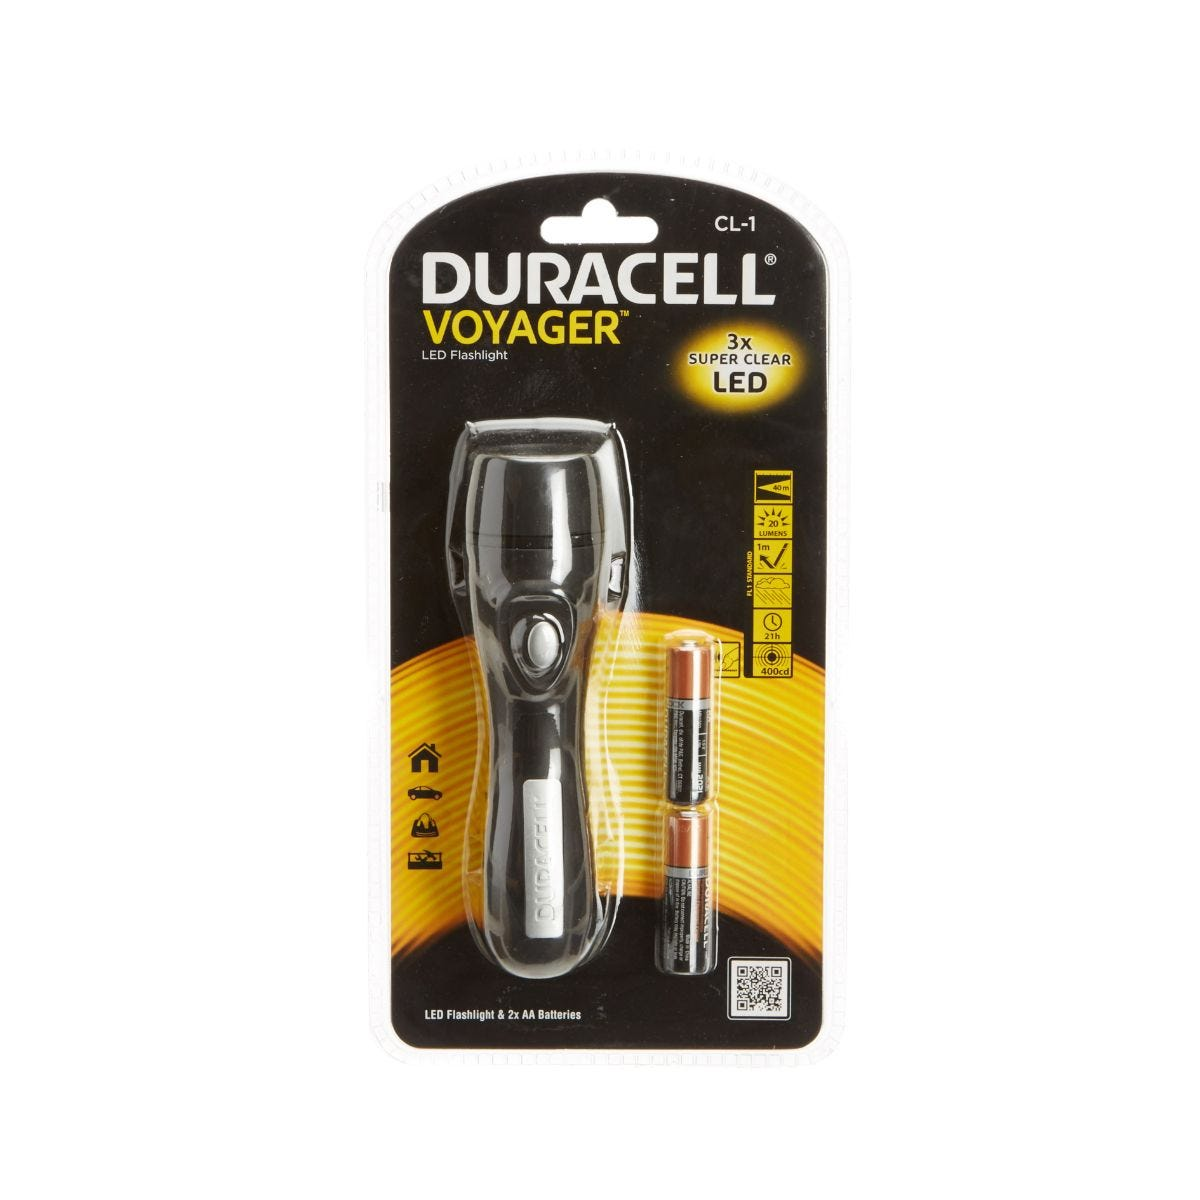 Duracell CL-1 Voyager Torch 3 LED